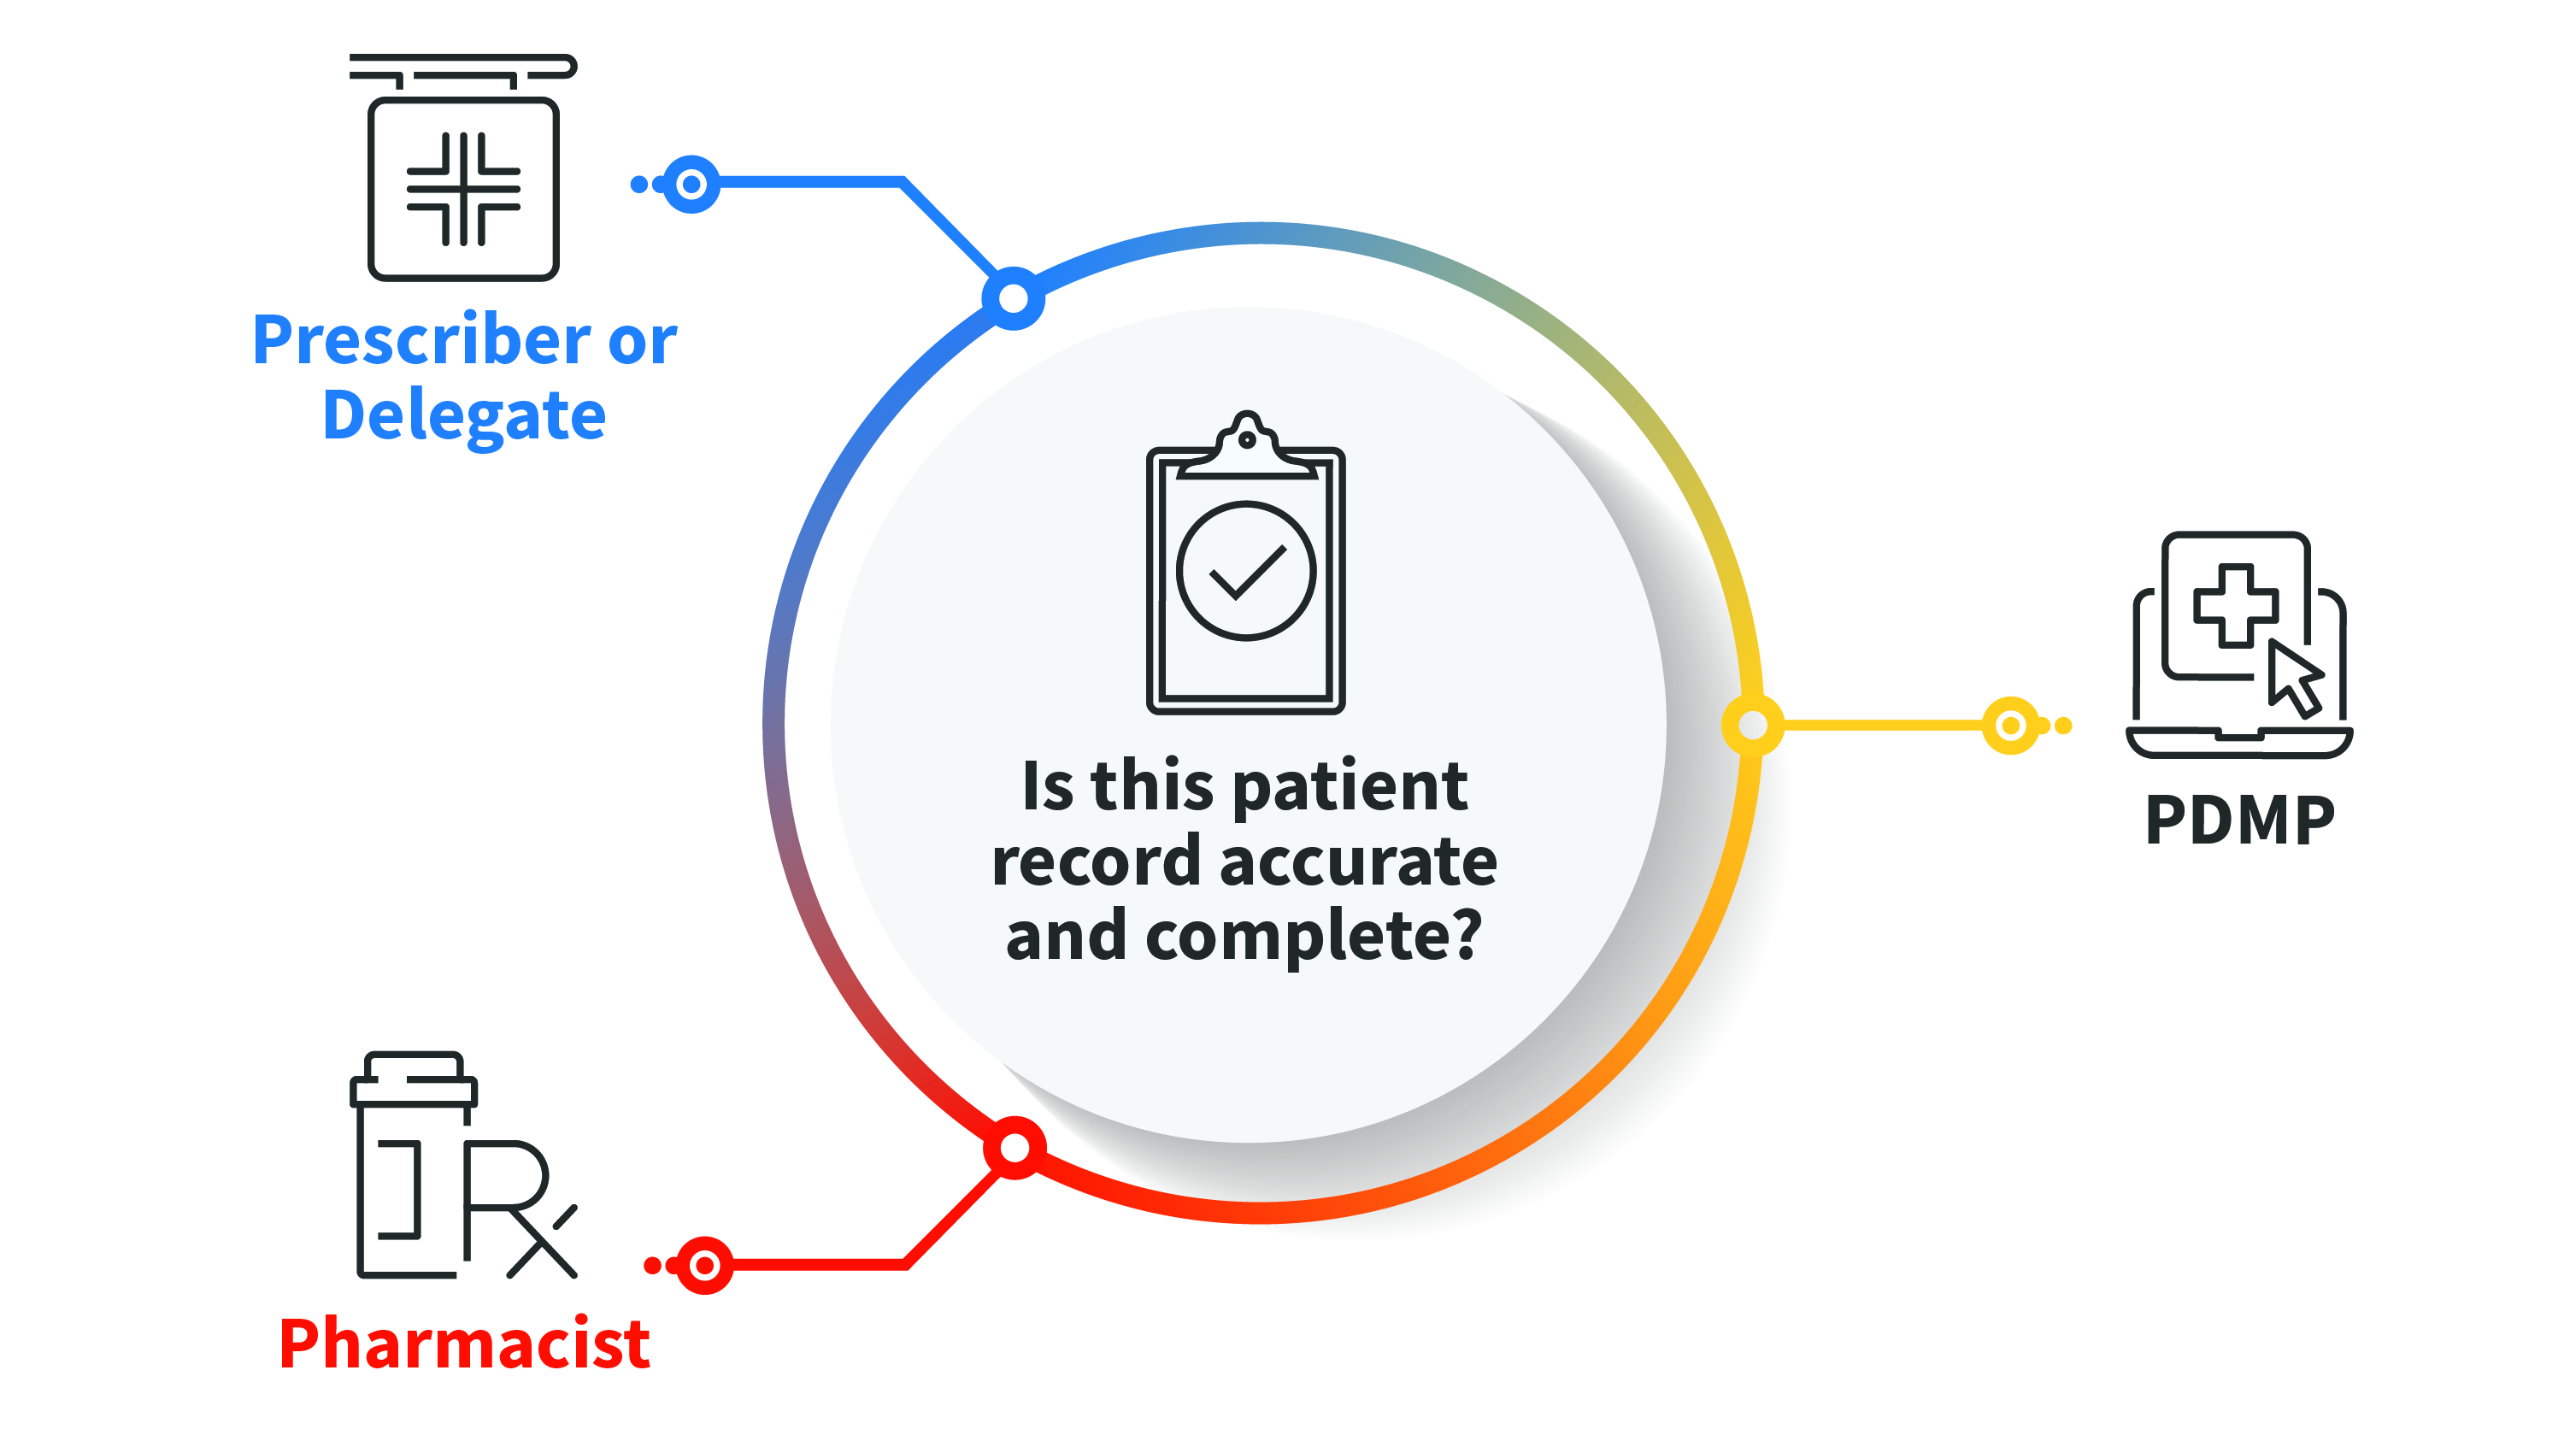 Graph showing the three components of an accurate patient record first is the prescriber, second the PDMP entity, and last is the pharmacist